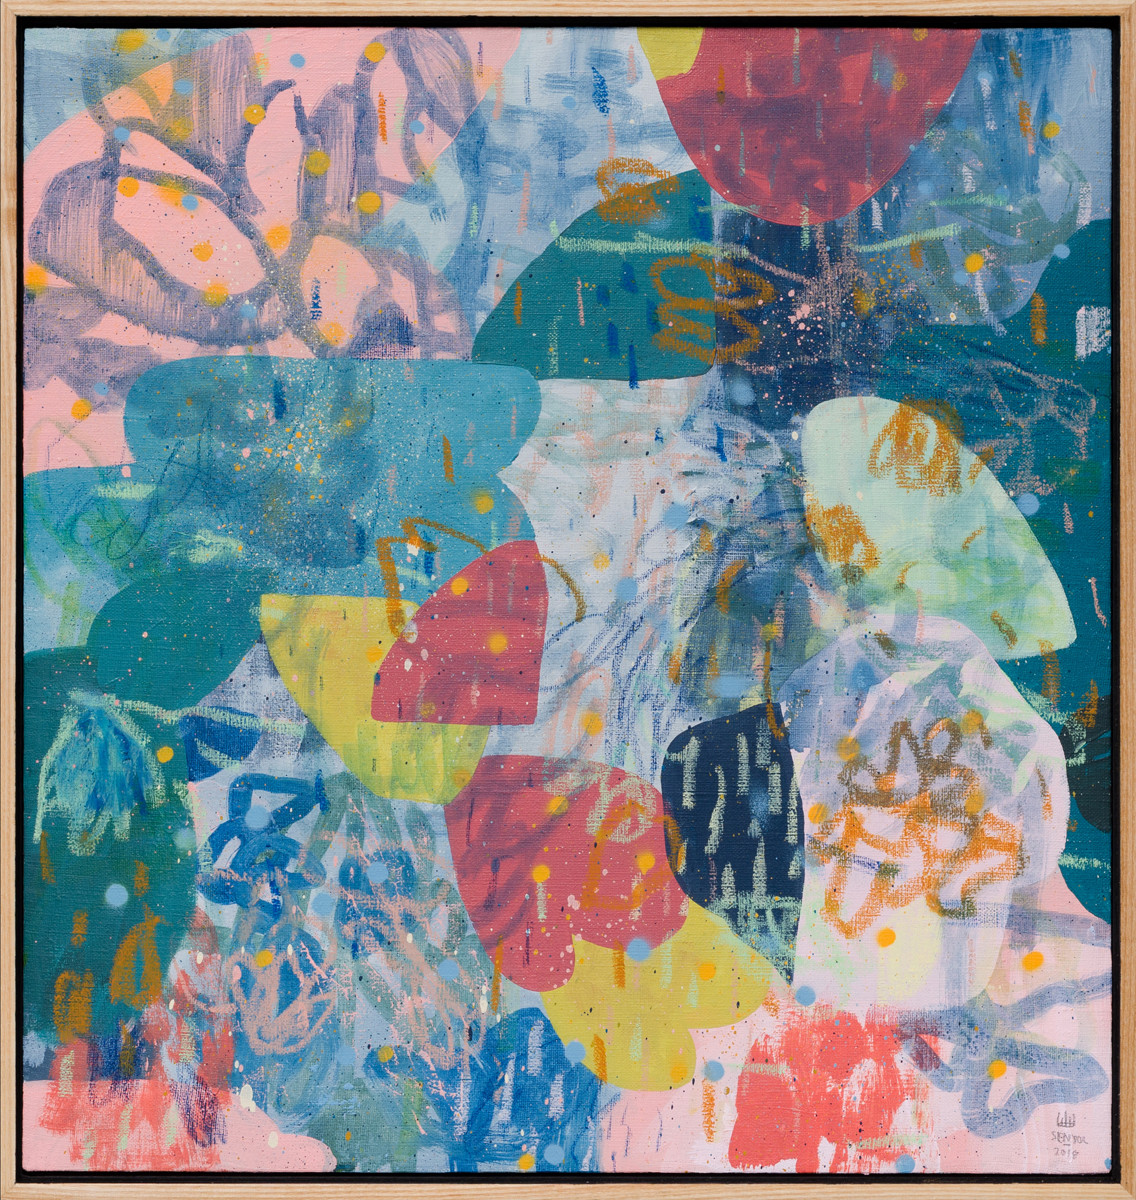 PAUL SENYOL. Plausible, 2018. Mixed media on linen. 440 x 415mm. Framed Courtesy of David Krut Projects